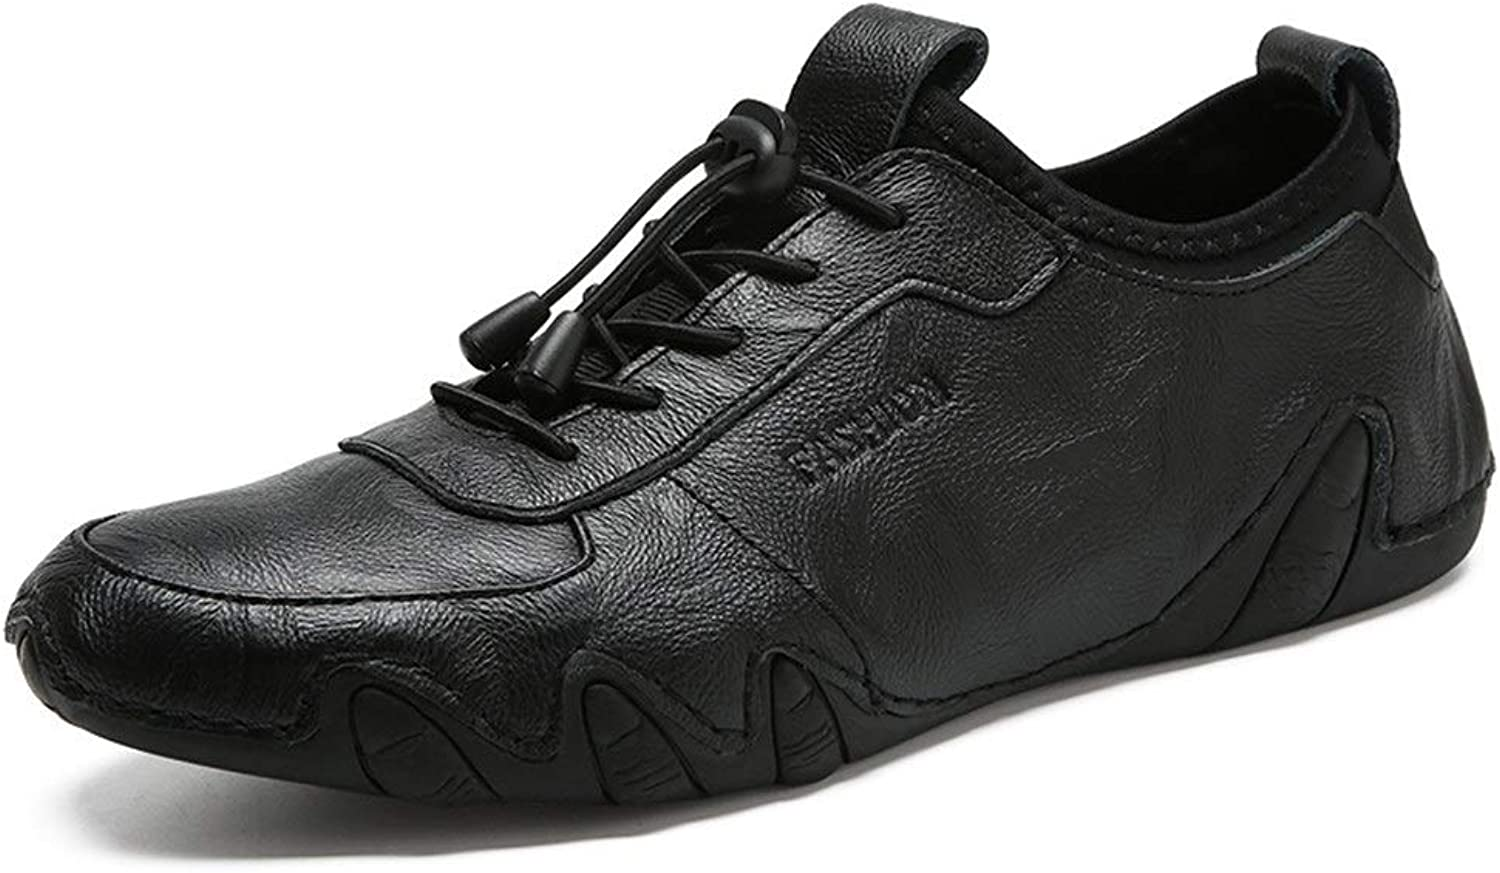 MUWU Leisure skor for for for Mans gående skor with Elastisk Lock Shoakes Casual Slip On Round Toe läder Övre  snabb leverans